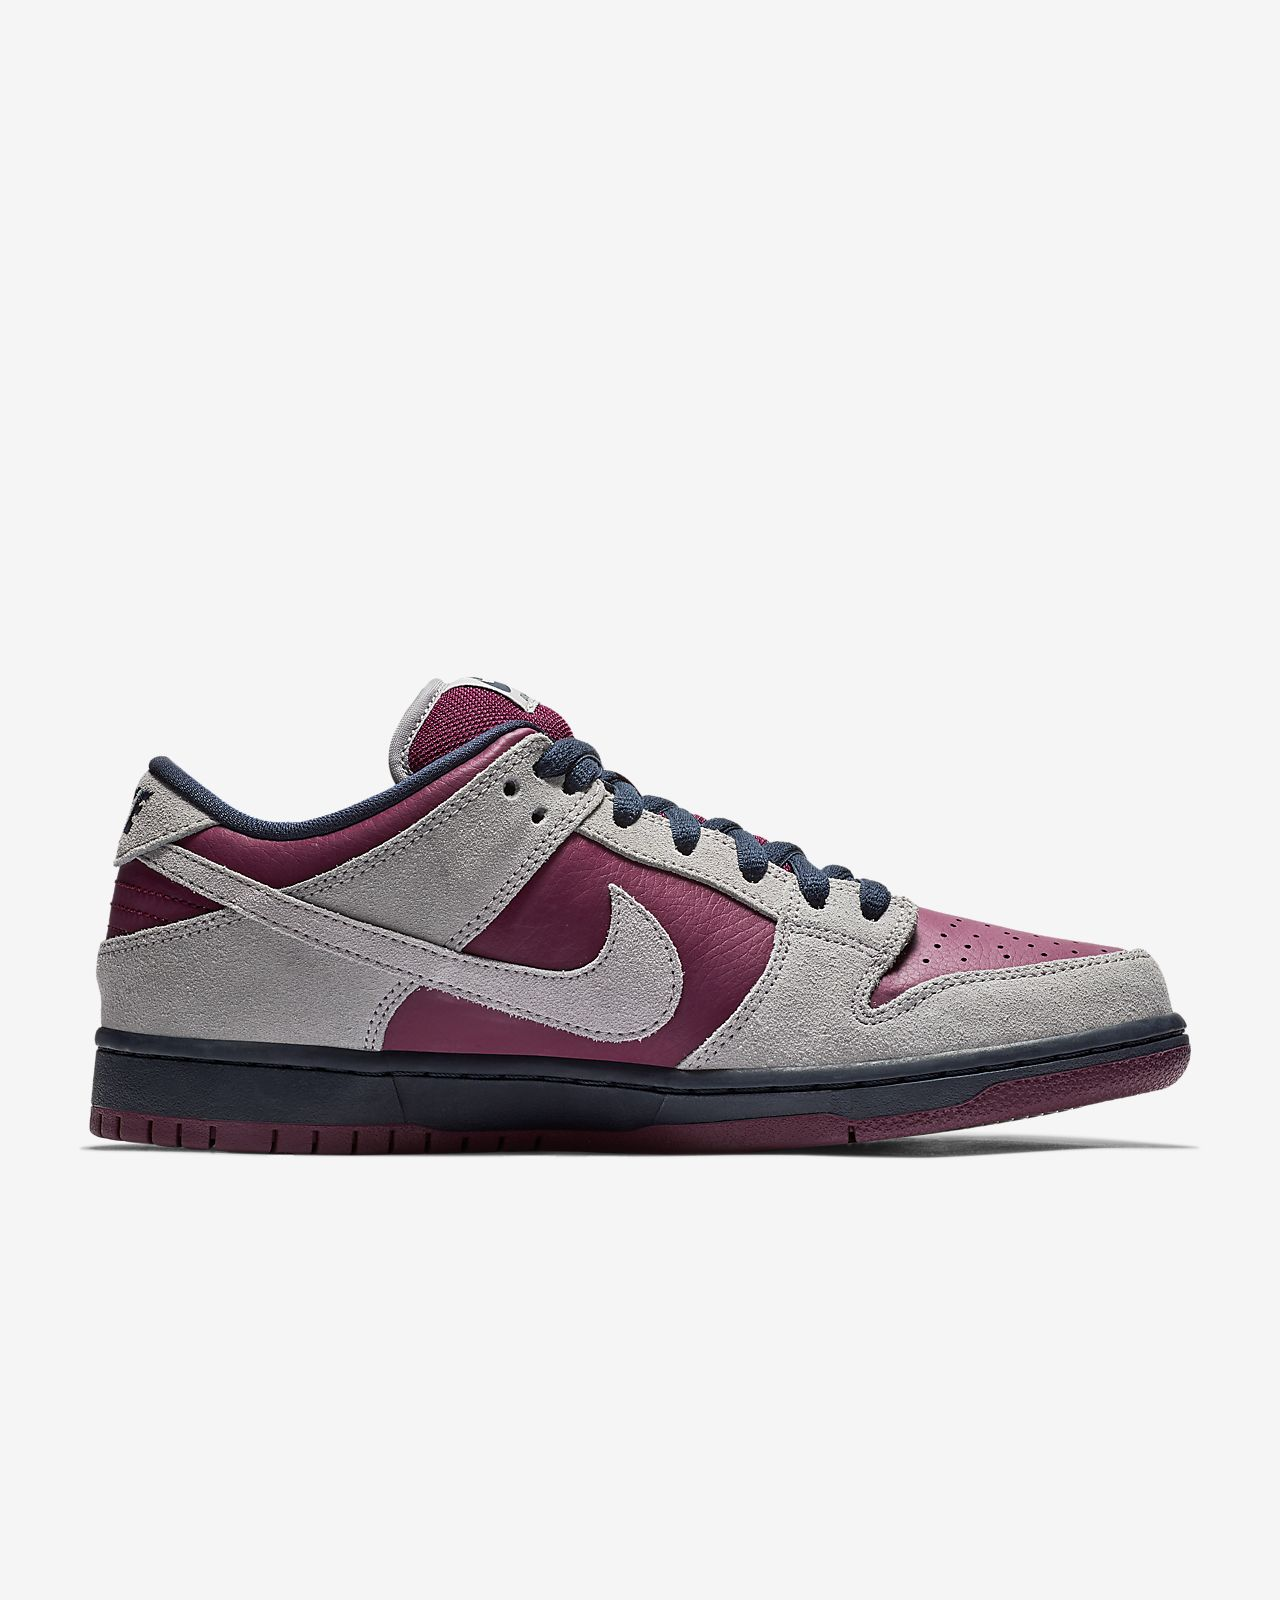 big sale f72b9 92008 ... Nike SB Dunk Low Pro Skate Shoe